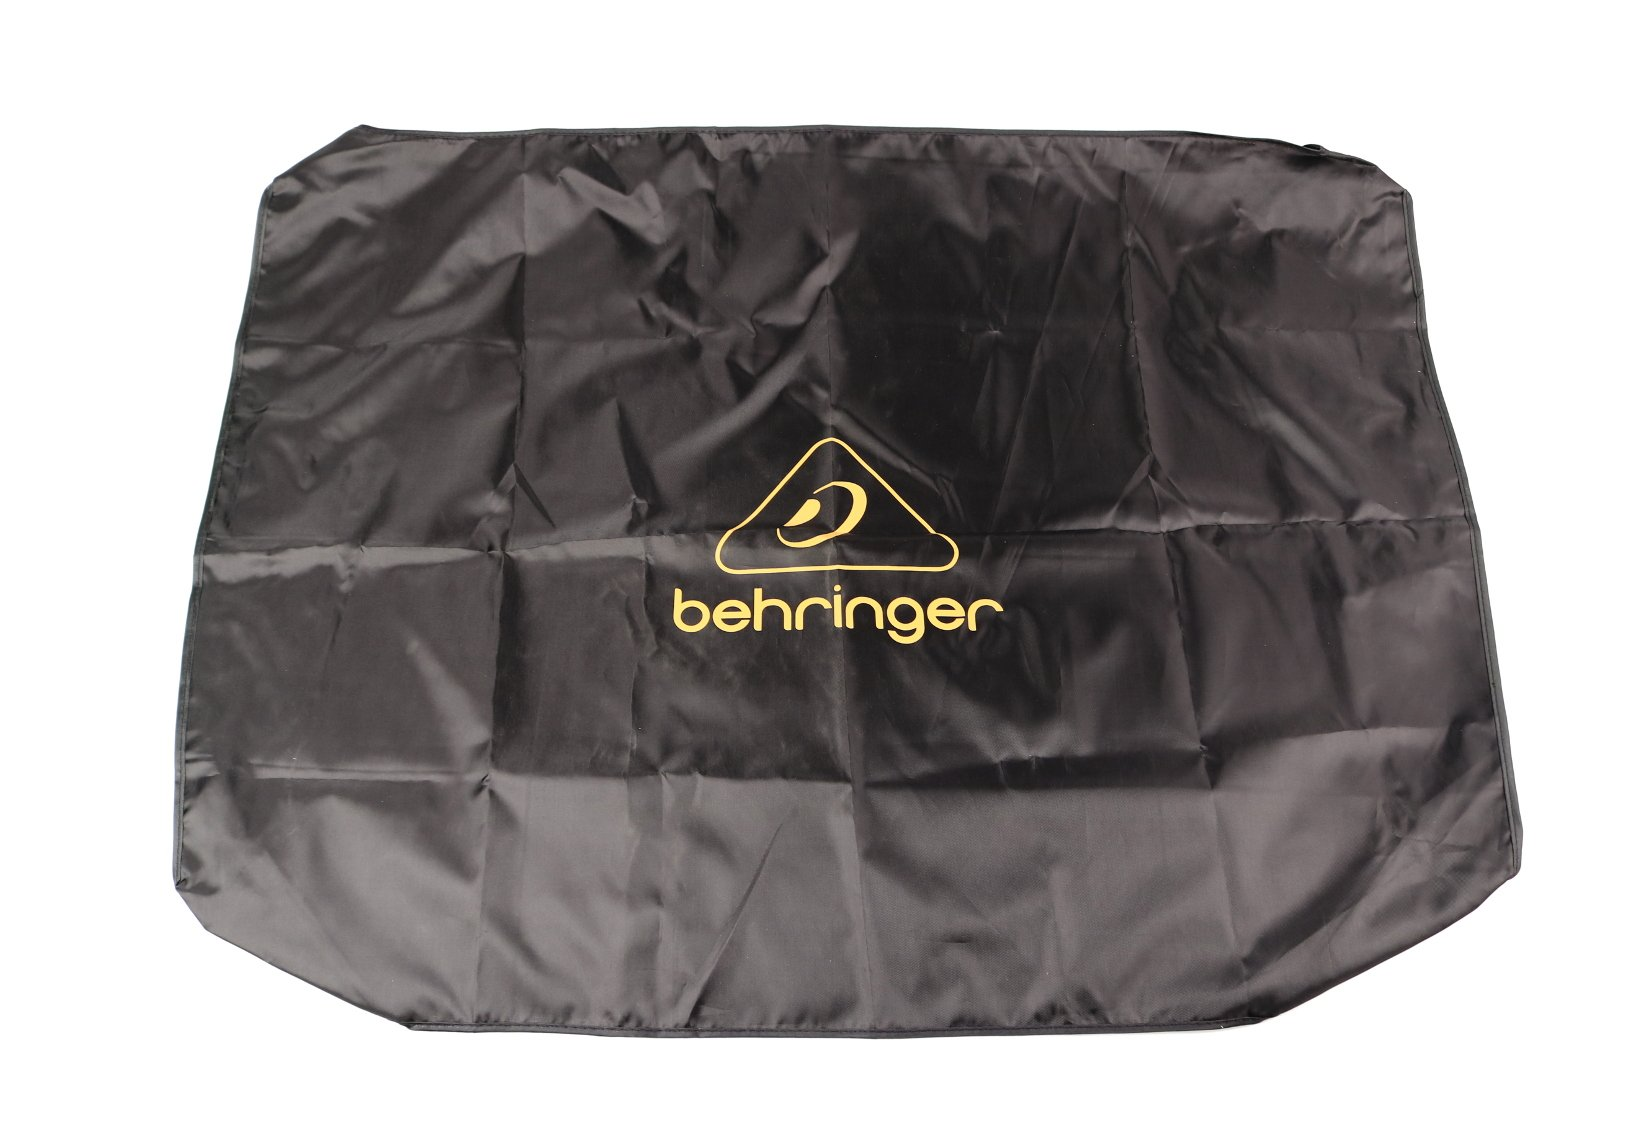 Behringer Z11-00000-57385 Dust Cover for X32 Z11-00000-57385